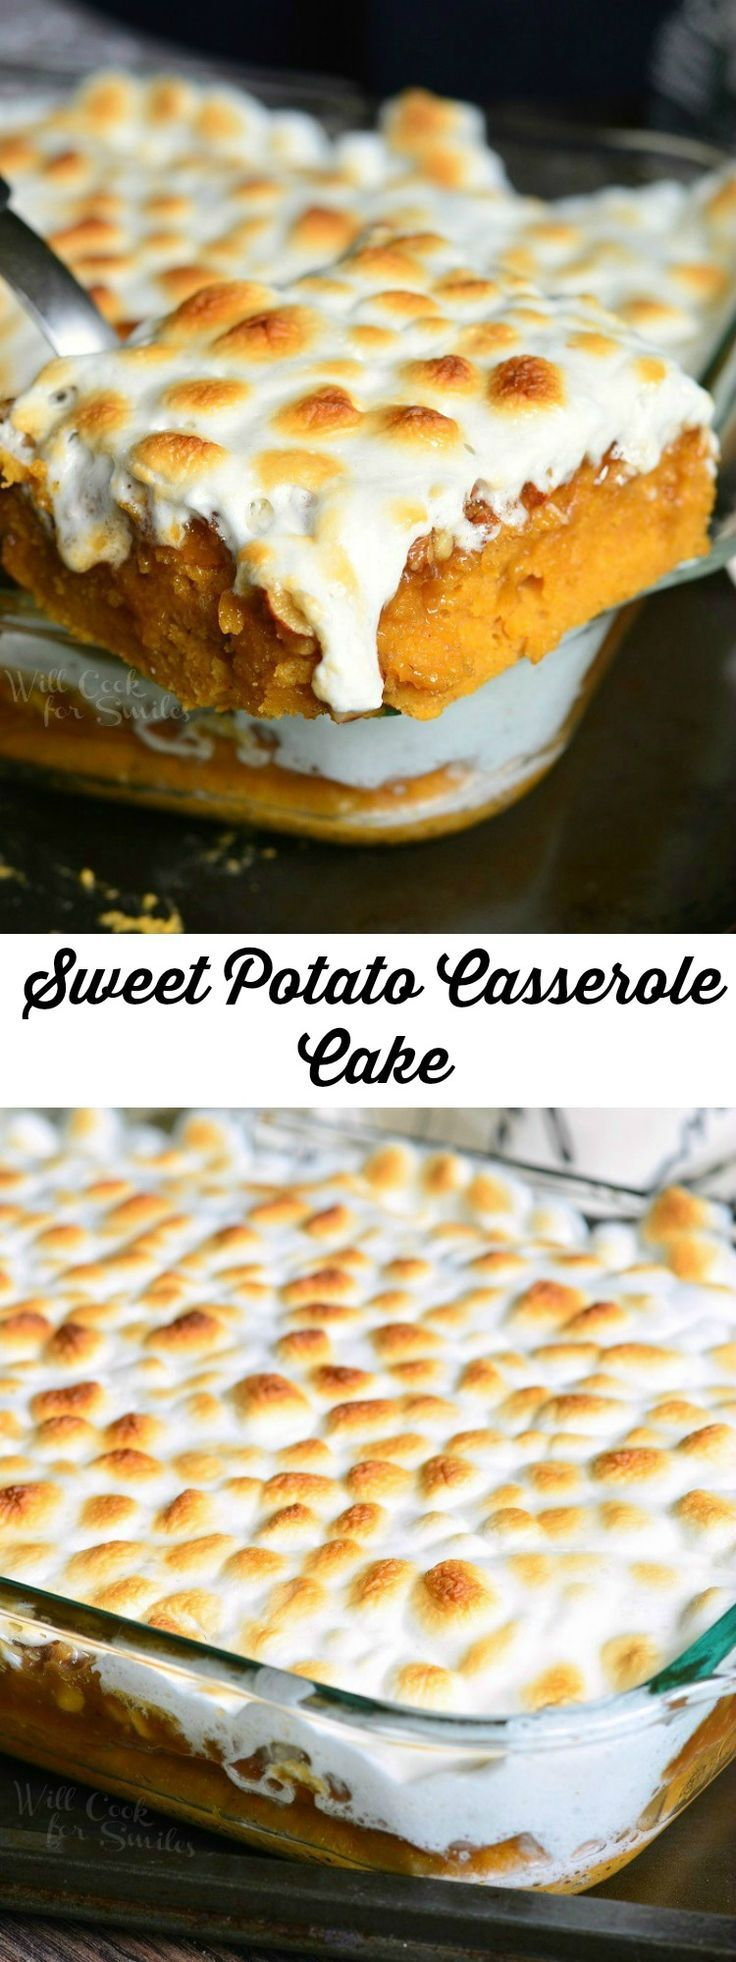 Sweet Potato Casserole Cake | from willcookforsmiles.com #desserts #cake #marshmallow